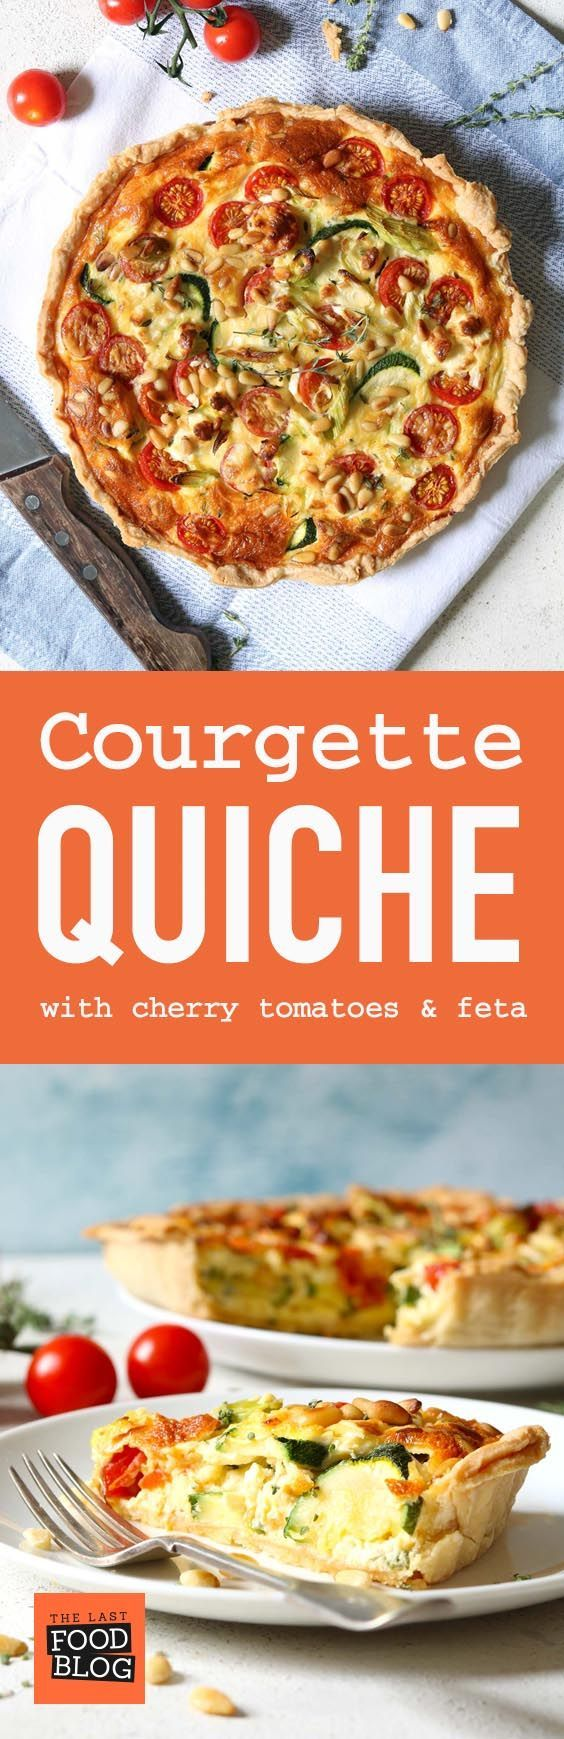 Courgette Quiche with Cherry Tomatoes and Feta - thelastfoodblog.com